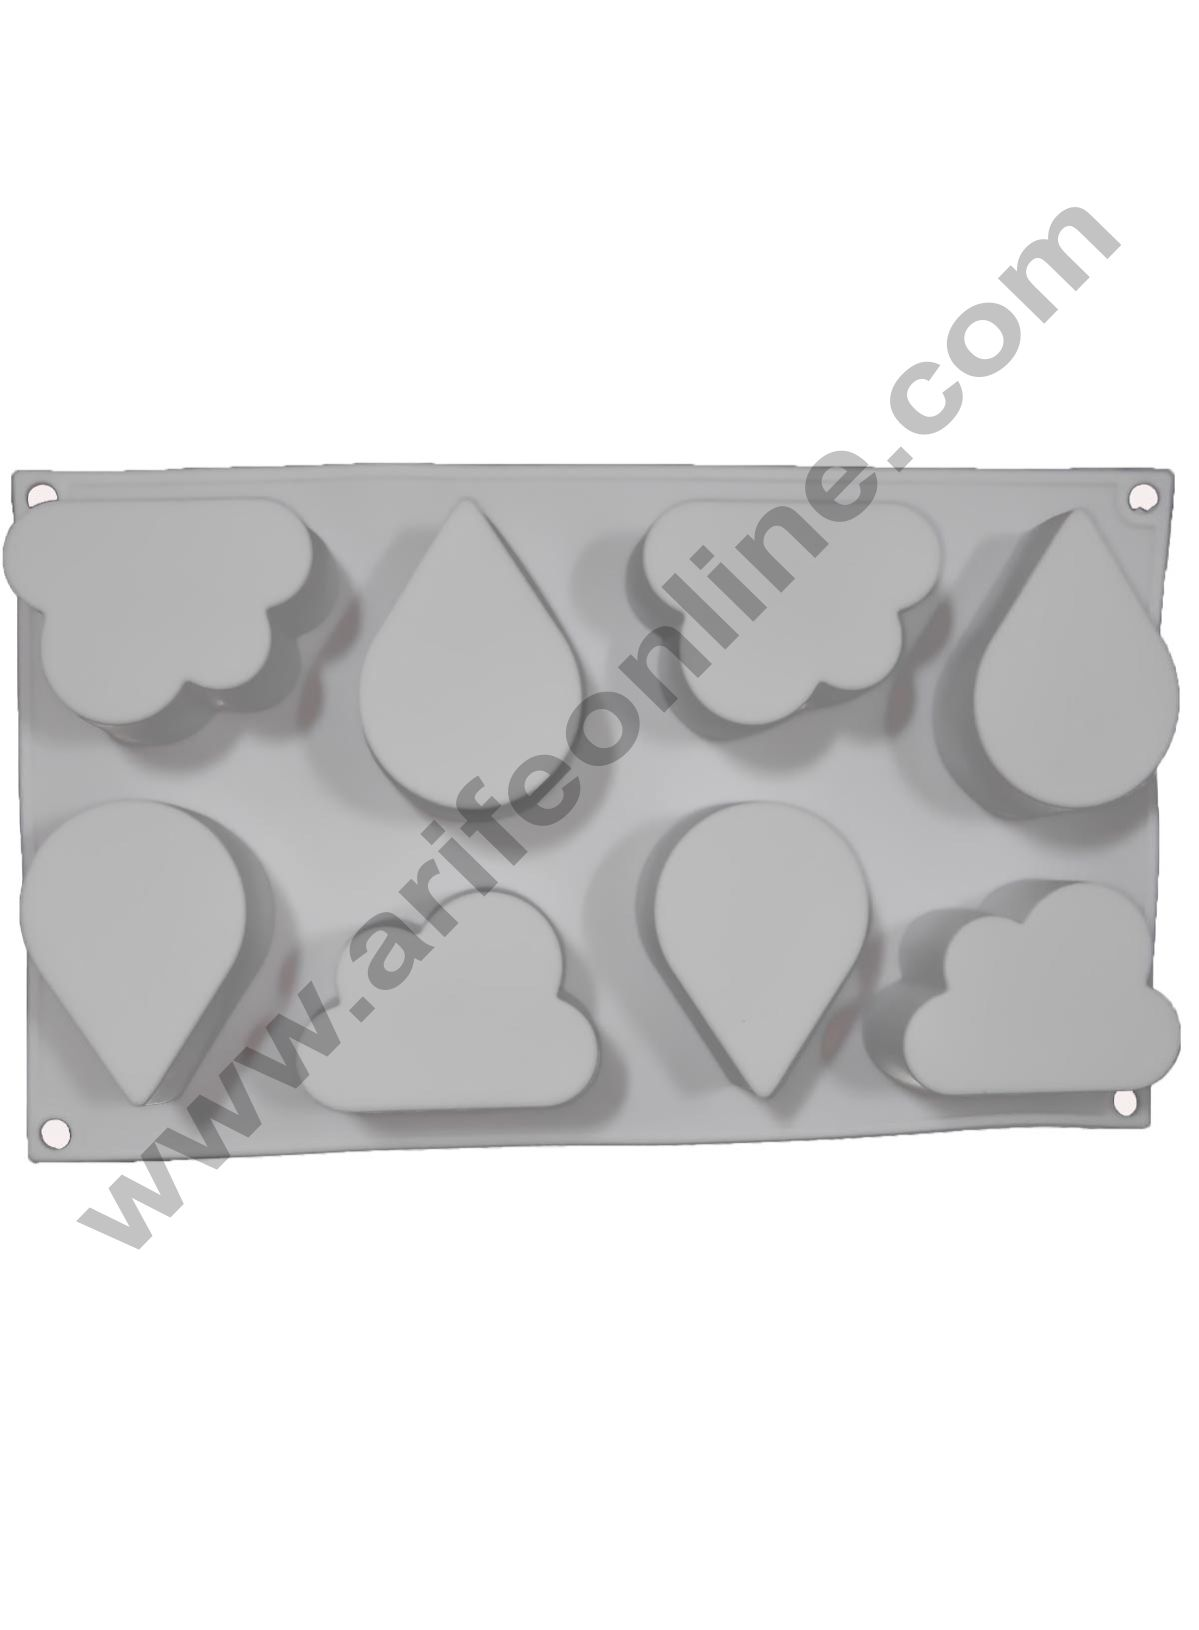 Cake Decor Silicon 8 Cavity Water Drops and Cloud Shape, Non Sticky Mold for soap,Chocolate, Fondant Sugar bakeware Mold